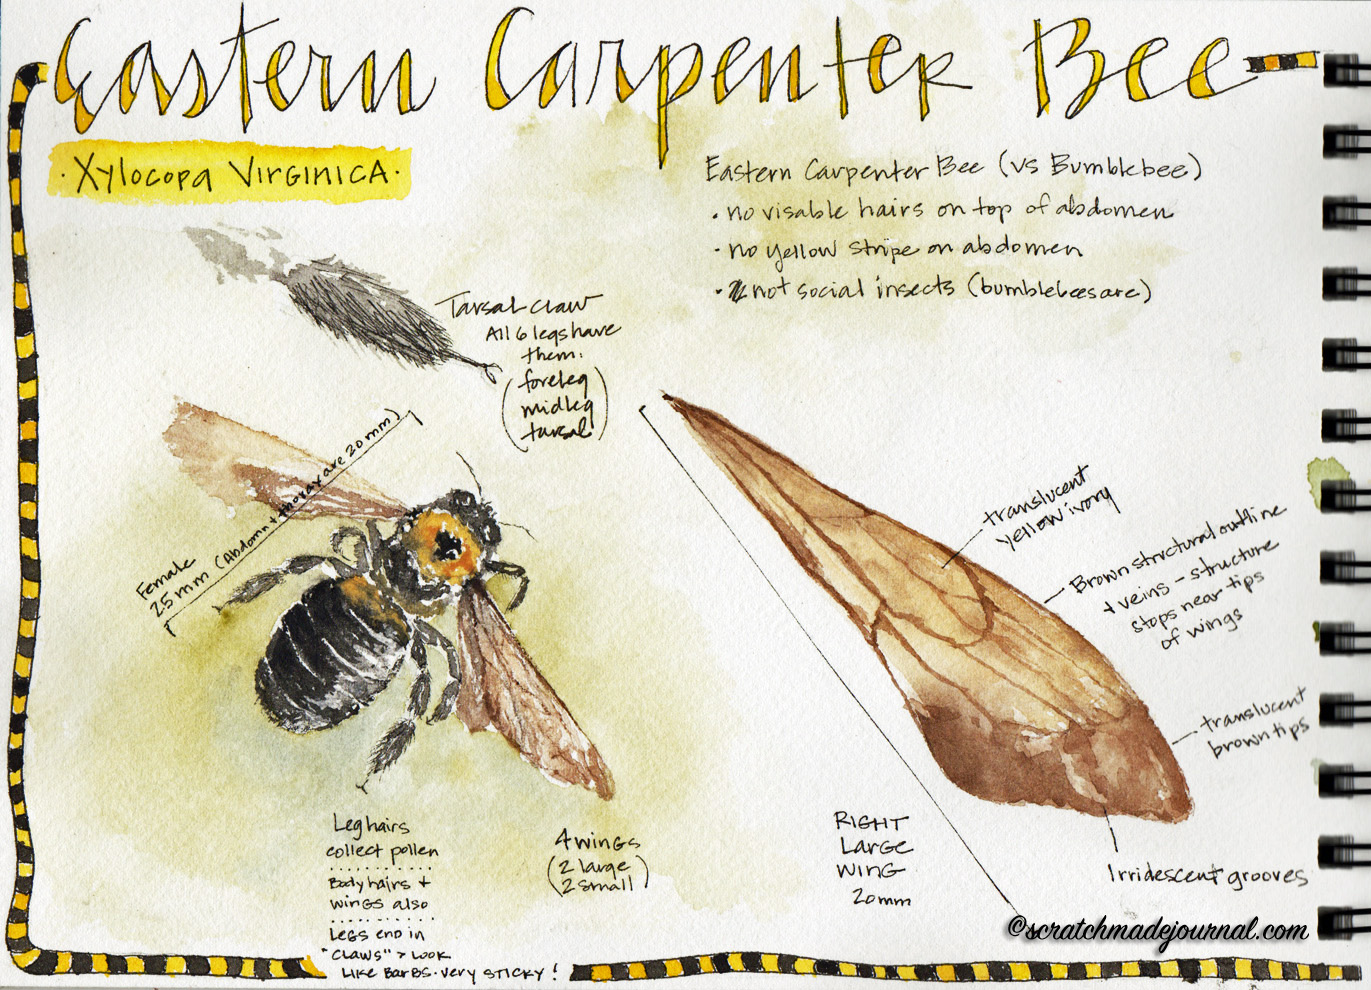 Sketching the Lowly Carpenter Bee - scratchmadejournal.com